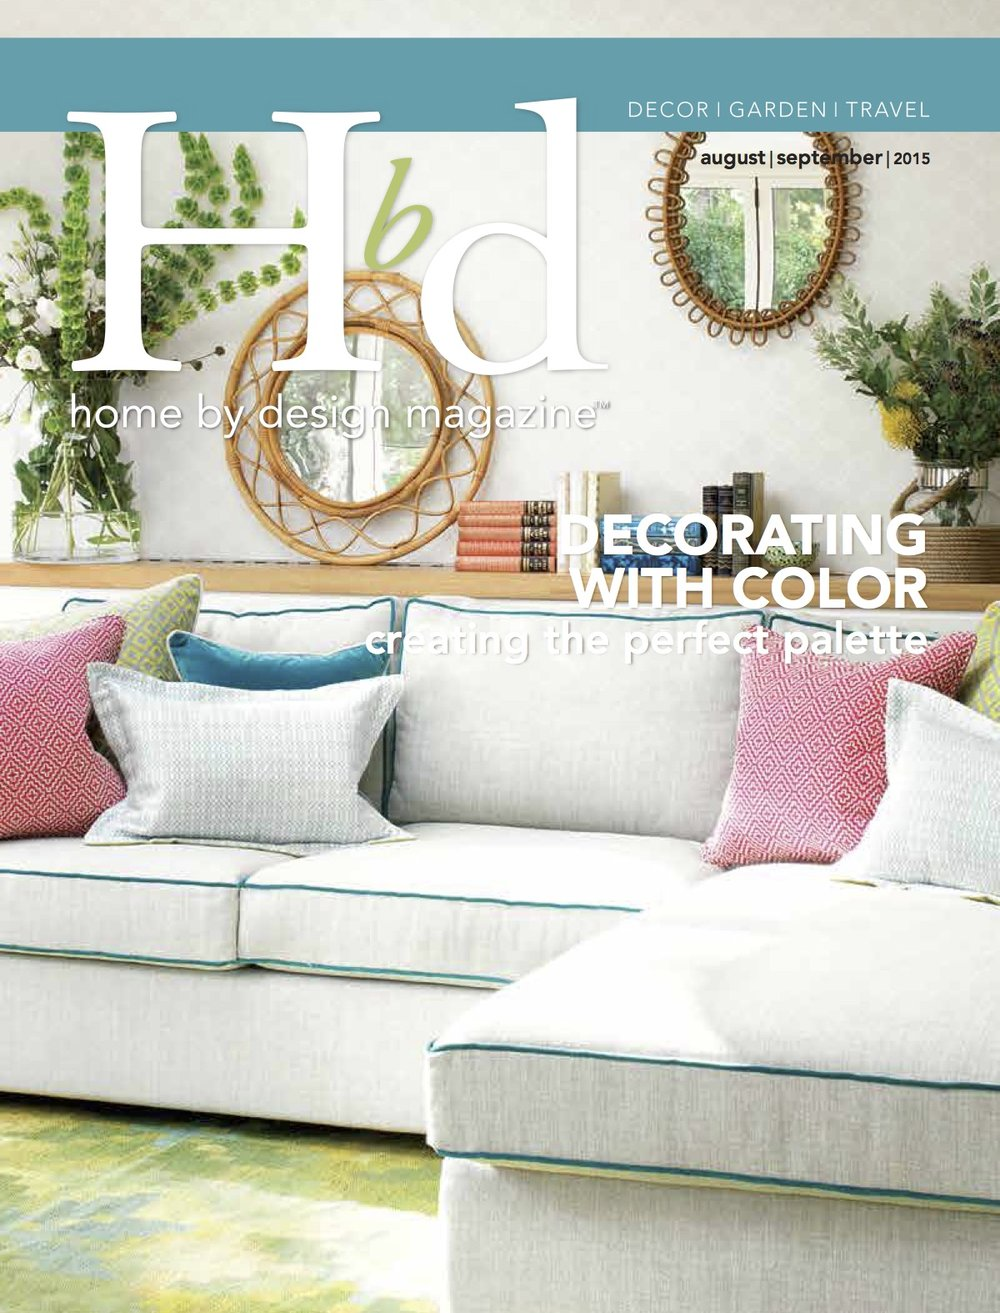 Home by Design Magazine — HUDSON INTERIOR DESIGNS